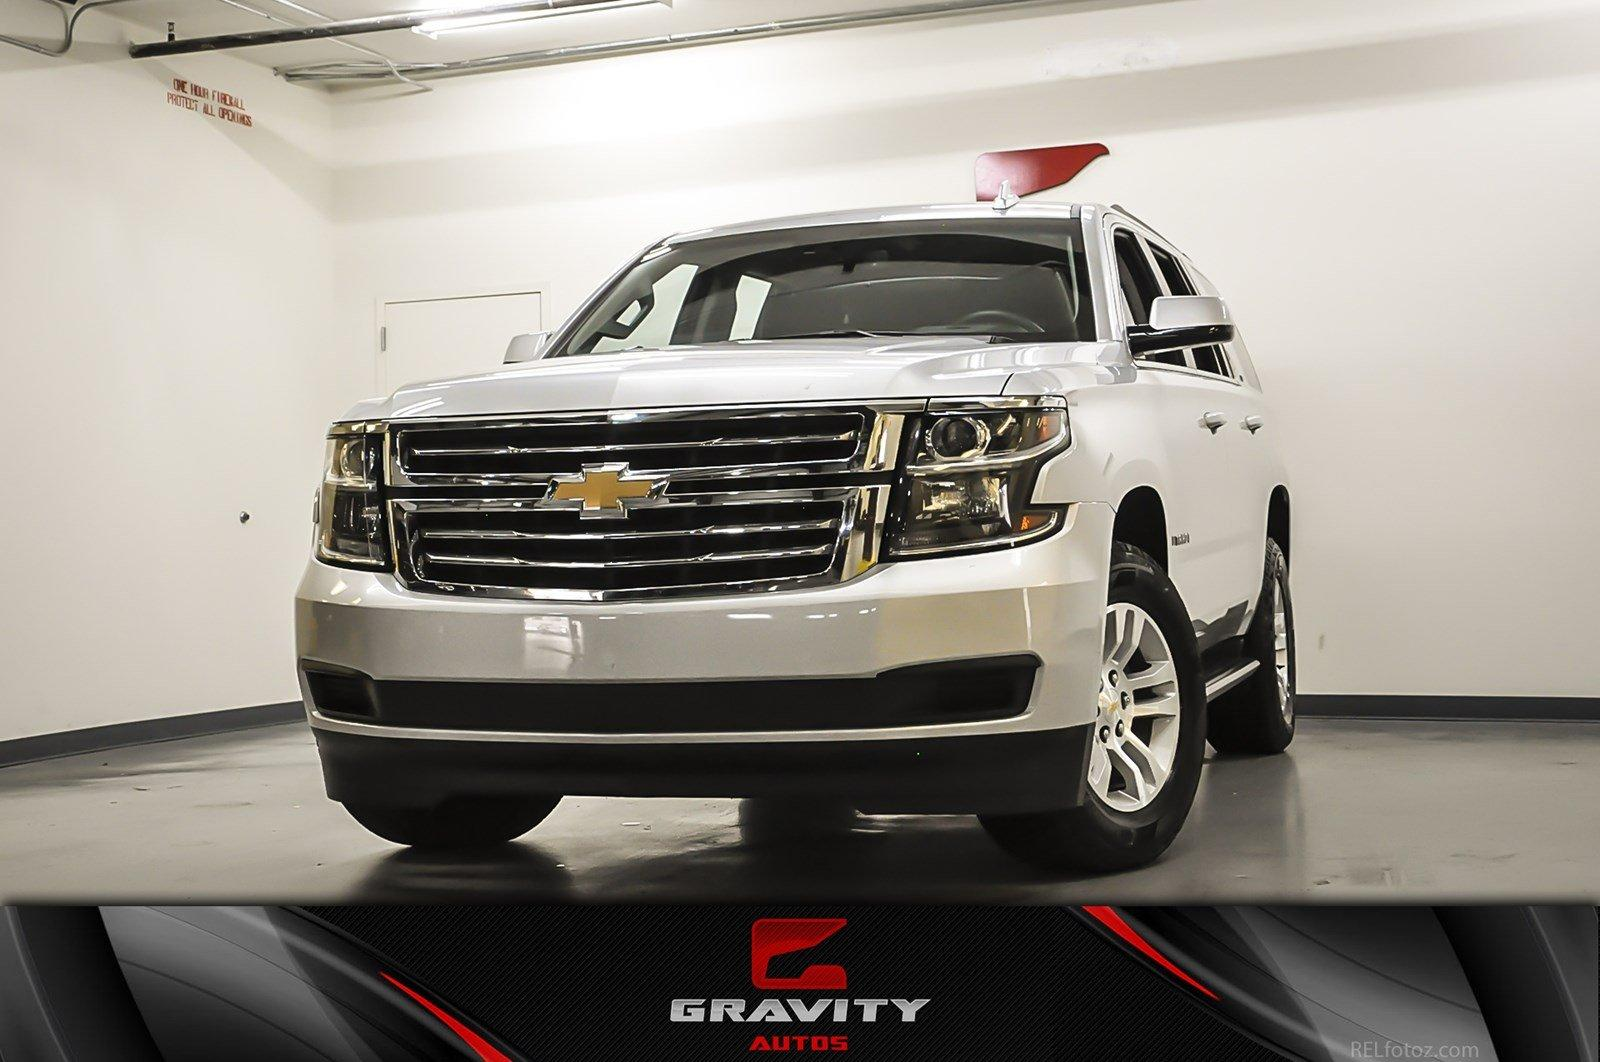 dafaebbcdaafcdc cars about sale gallery tahoe chevrolet on in with design for hd best ideas great chevy